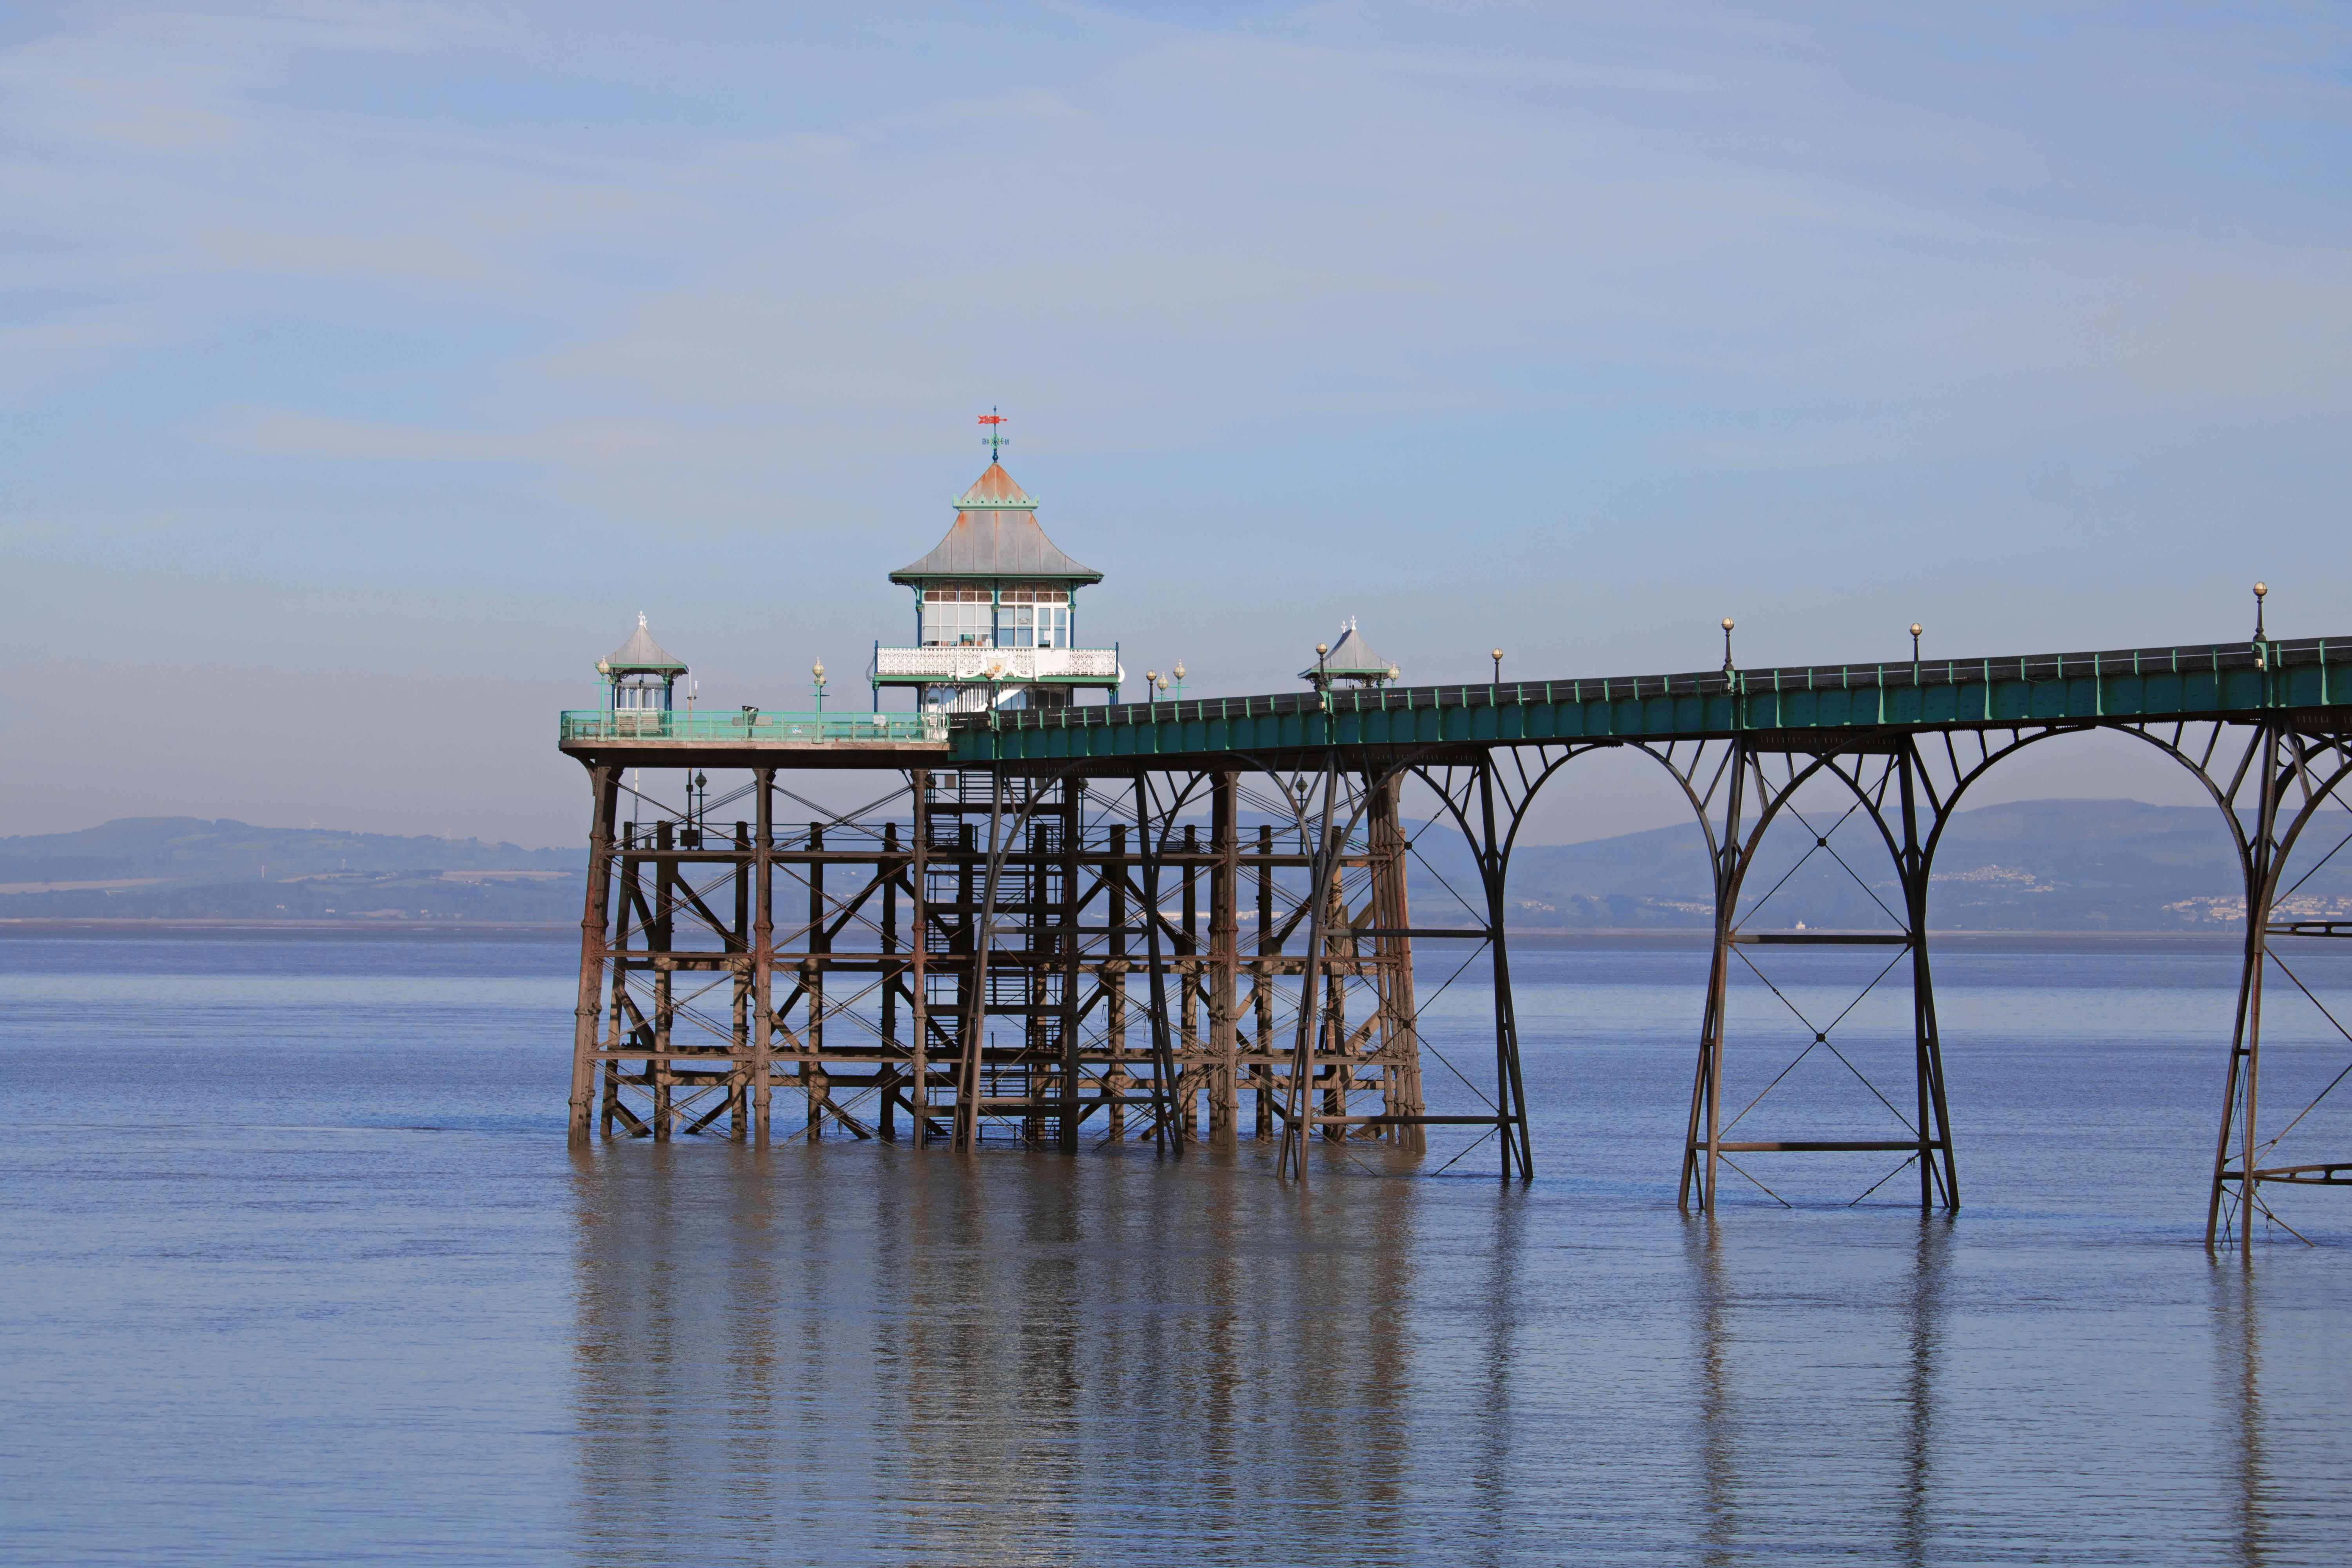 Sunny Day by the Sea in Clevedon